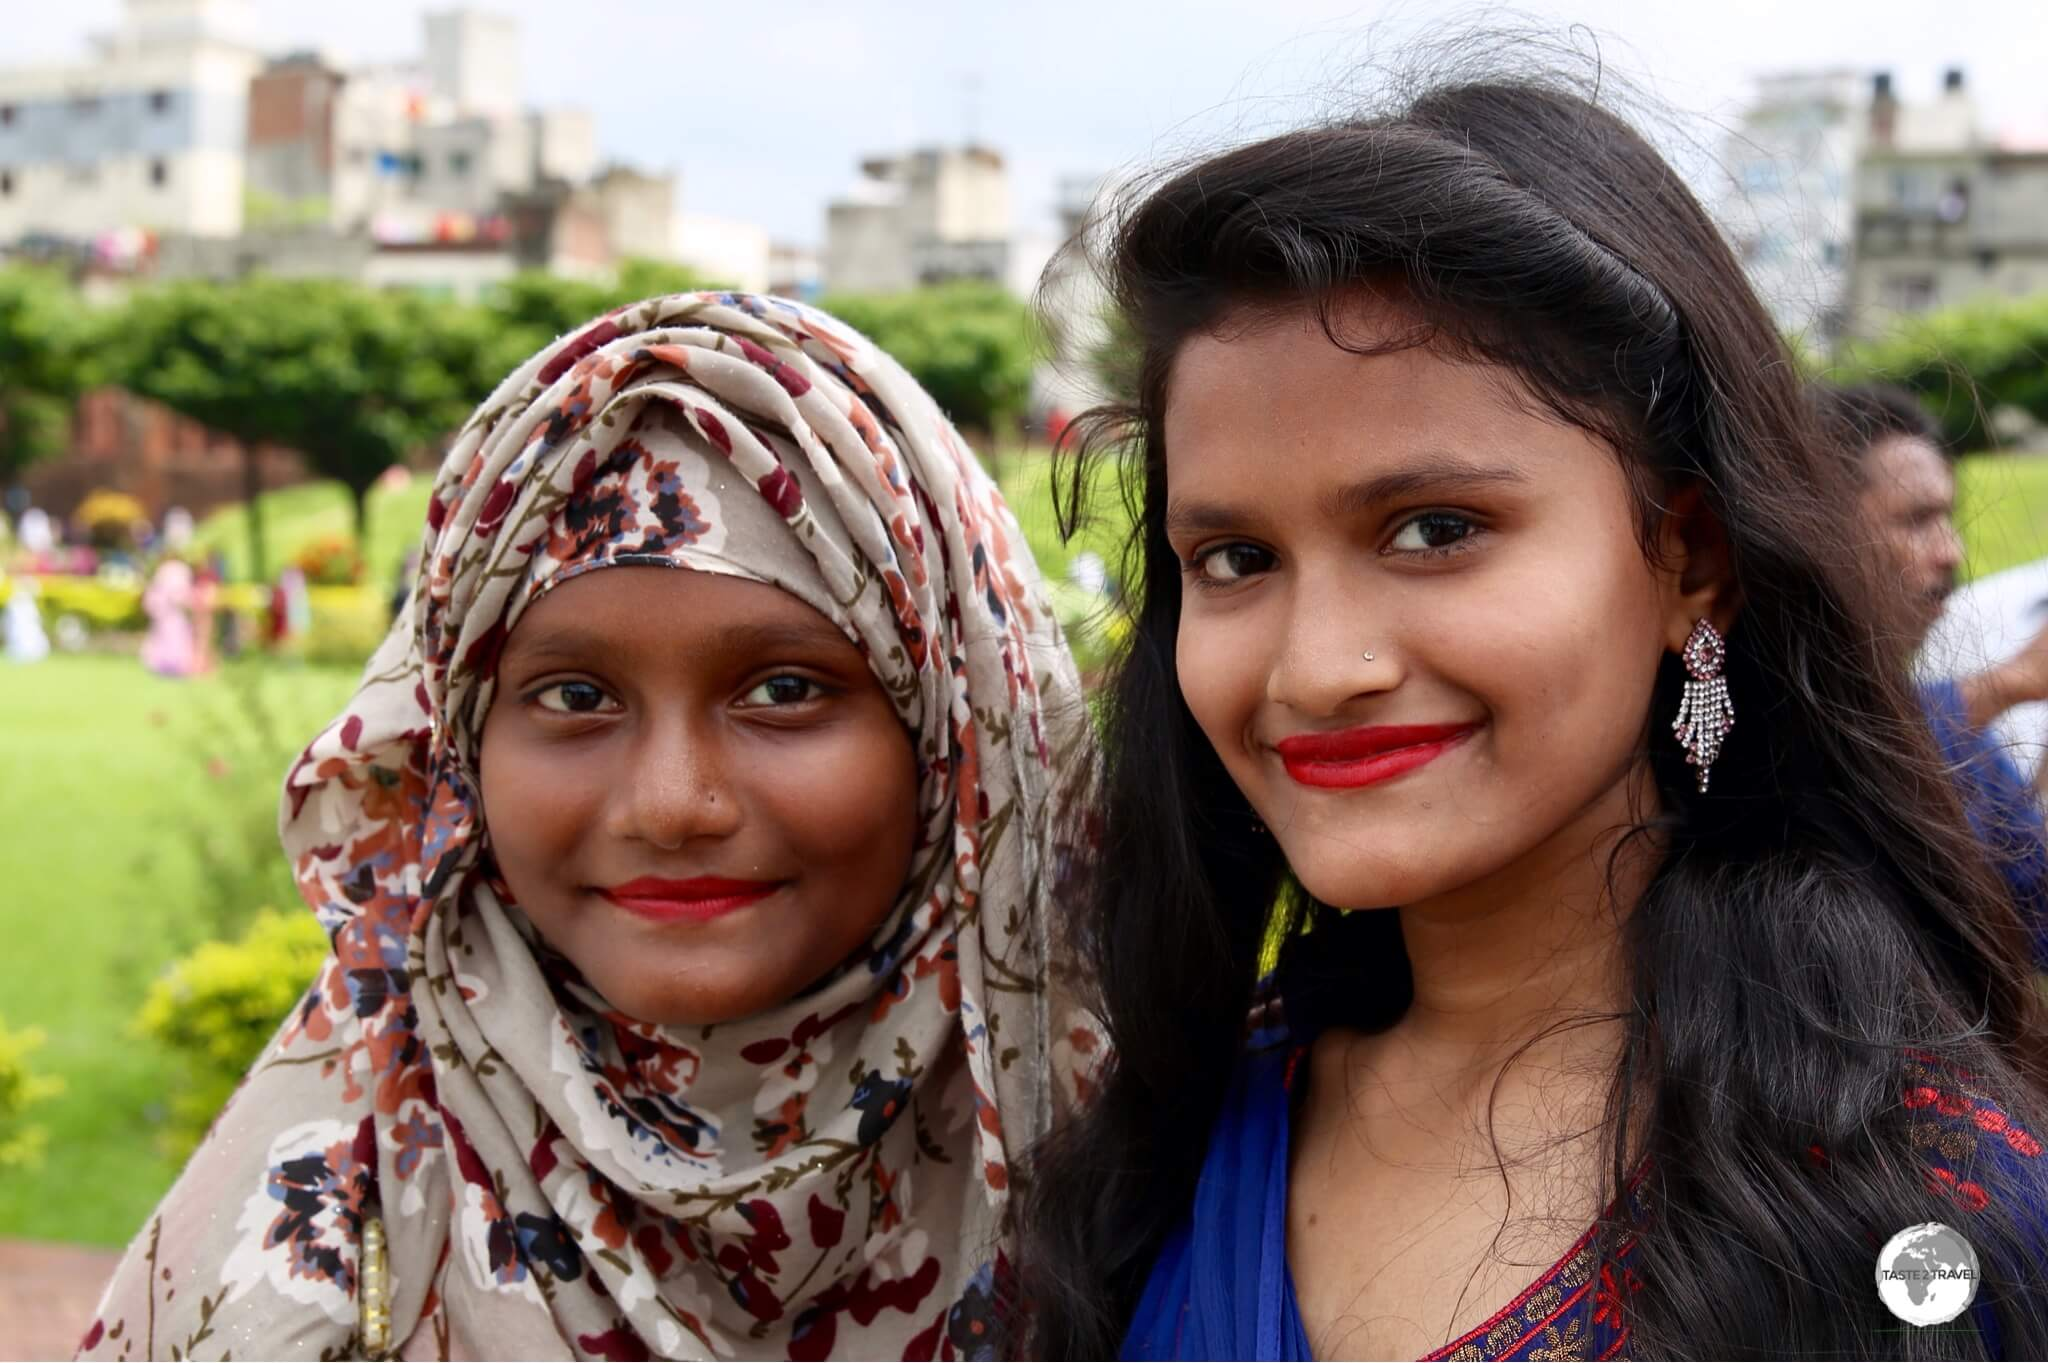 Two local girls enjoying a day out at Lalbagh Fort during the 'Eid al-Fitr' three-day holiday.